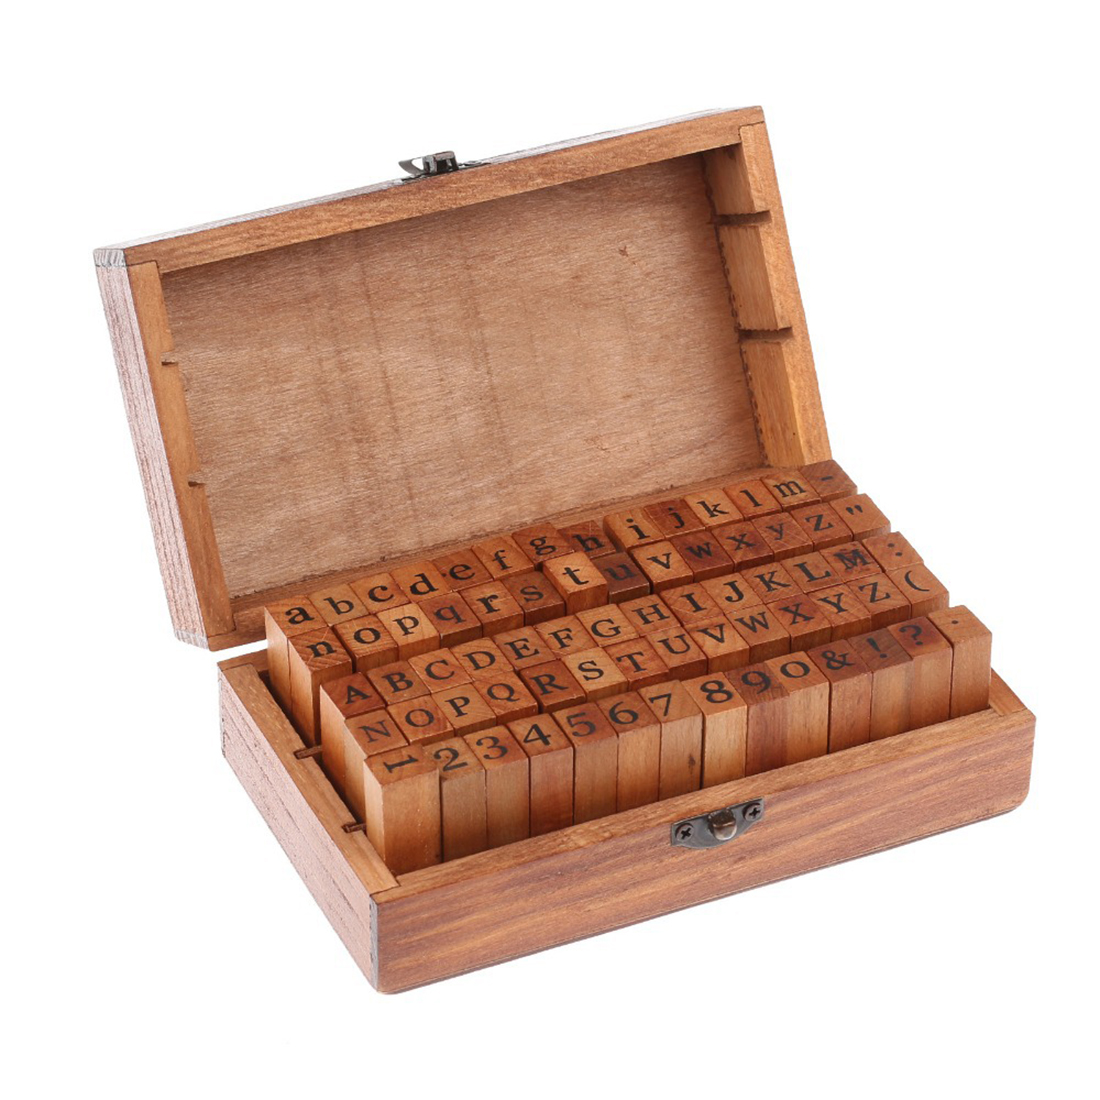 New 70pcs Vintage DIY Number And Alphabet Letter Wood Rubber Stamps Set With Wooden Box For Teaching And Play Games bobo bird brand new sun glasses men square wood oversized zebra wood sunglasses women with wooden box oculos 2017